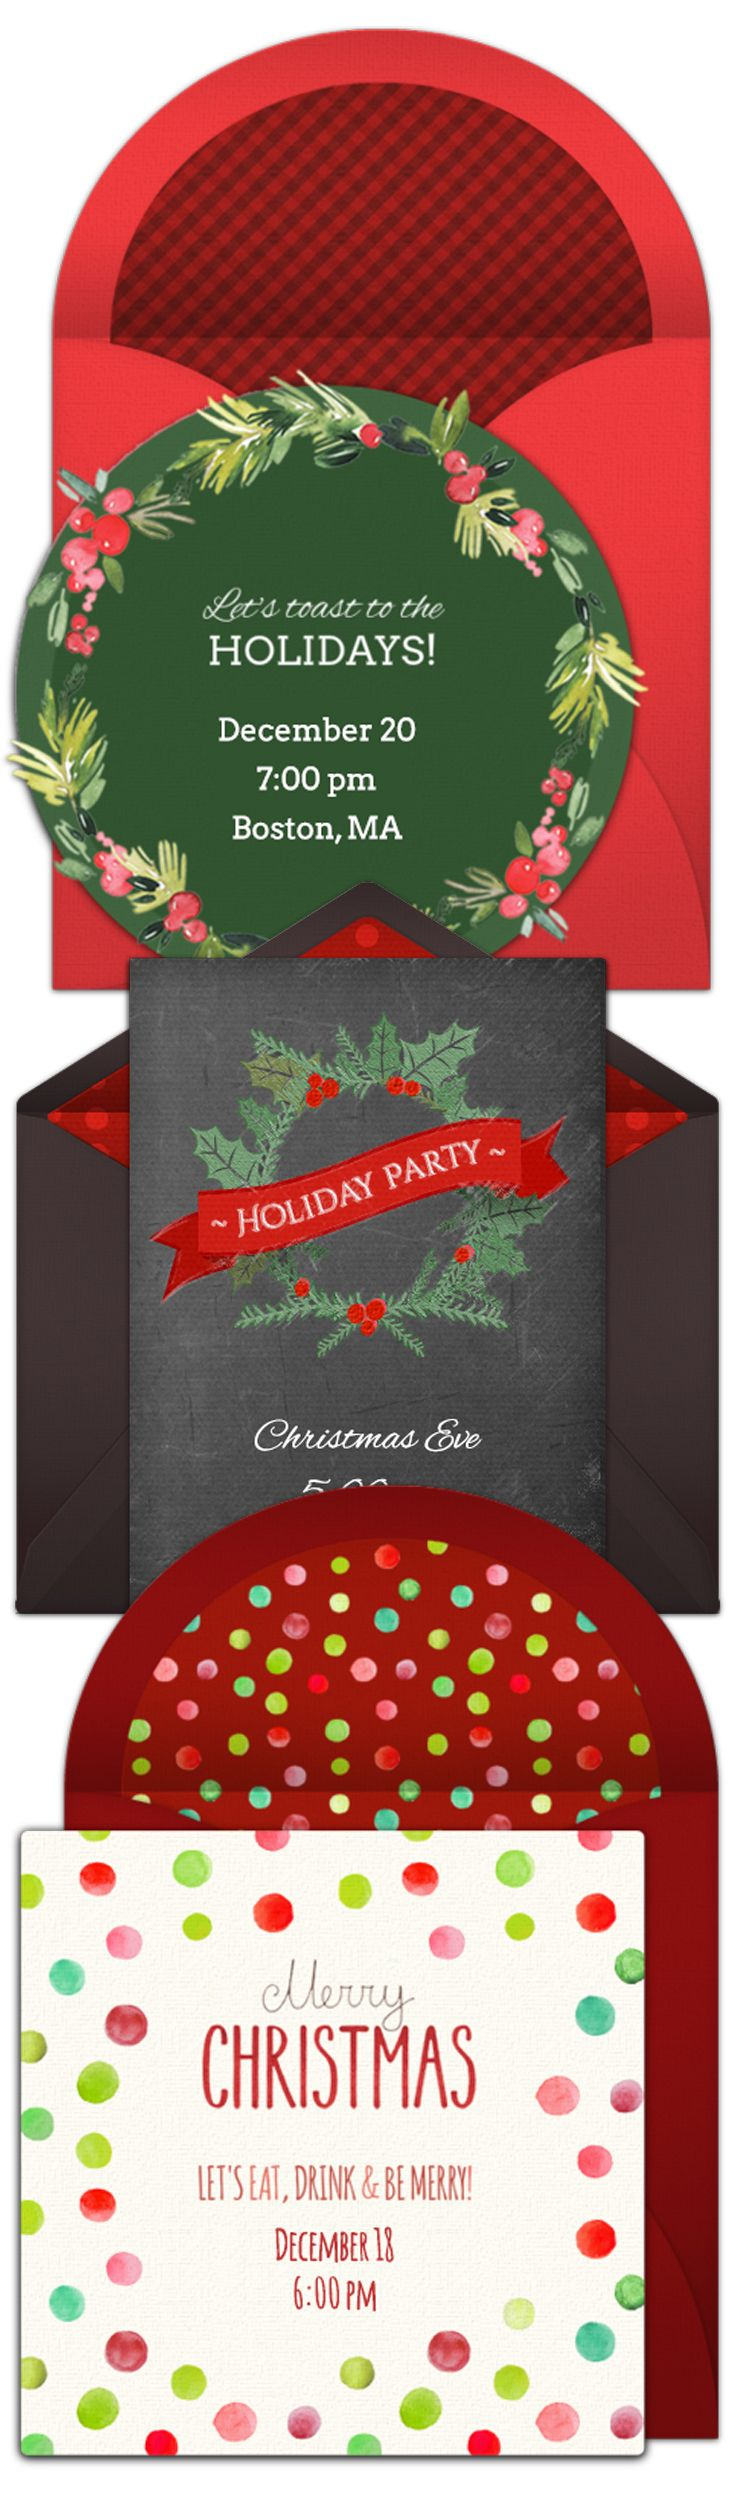 9 best Christmas Party Ideas images on Pinterest   Christmas ...